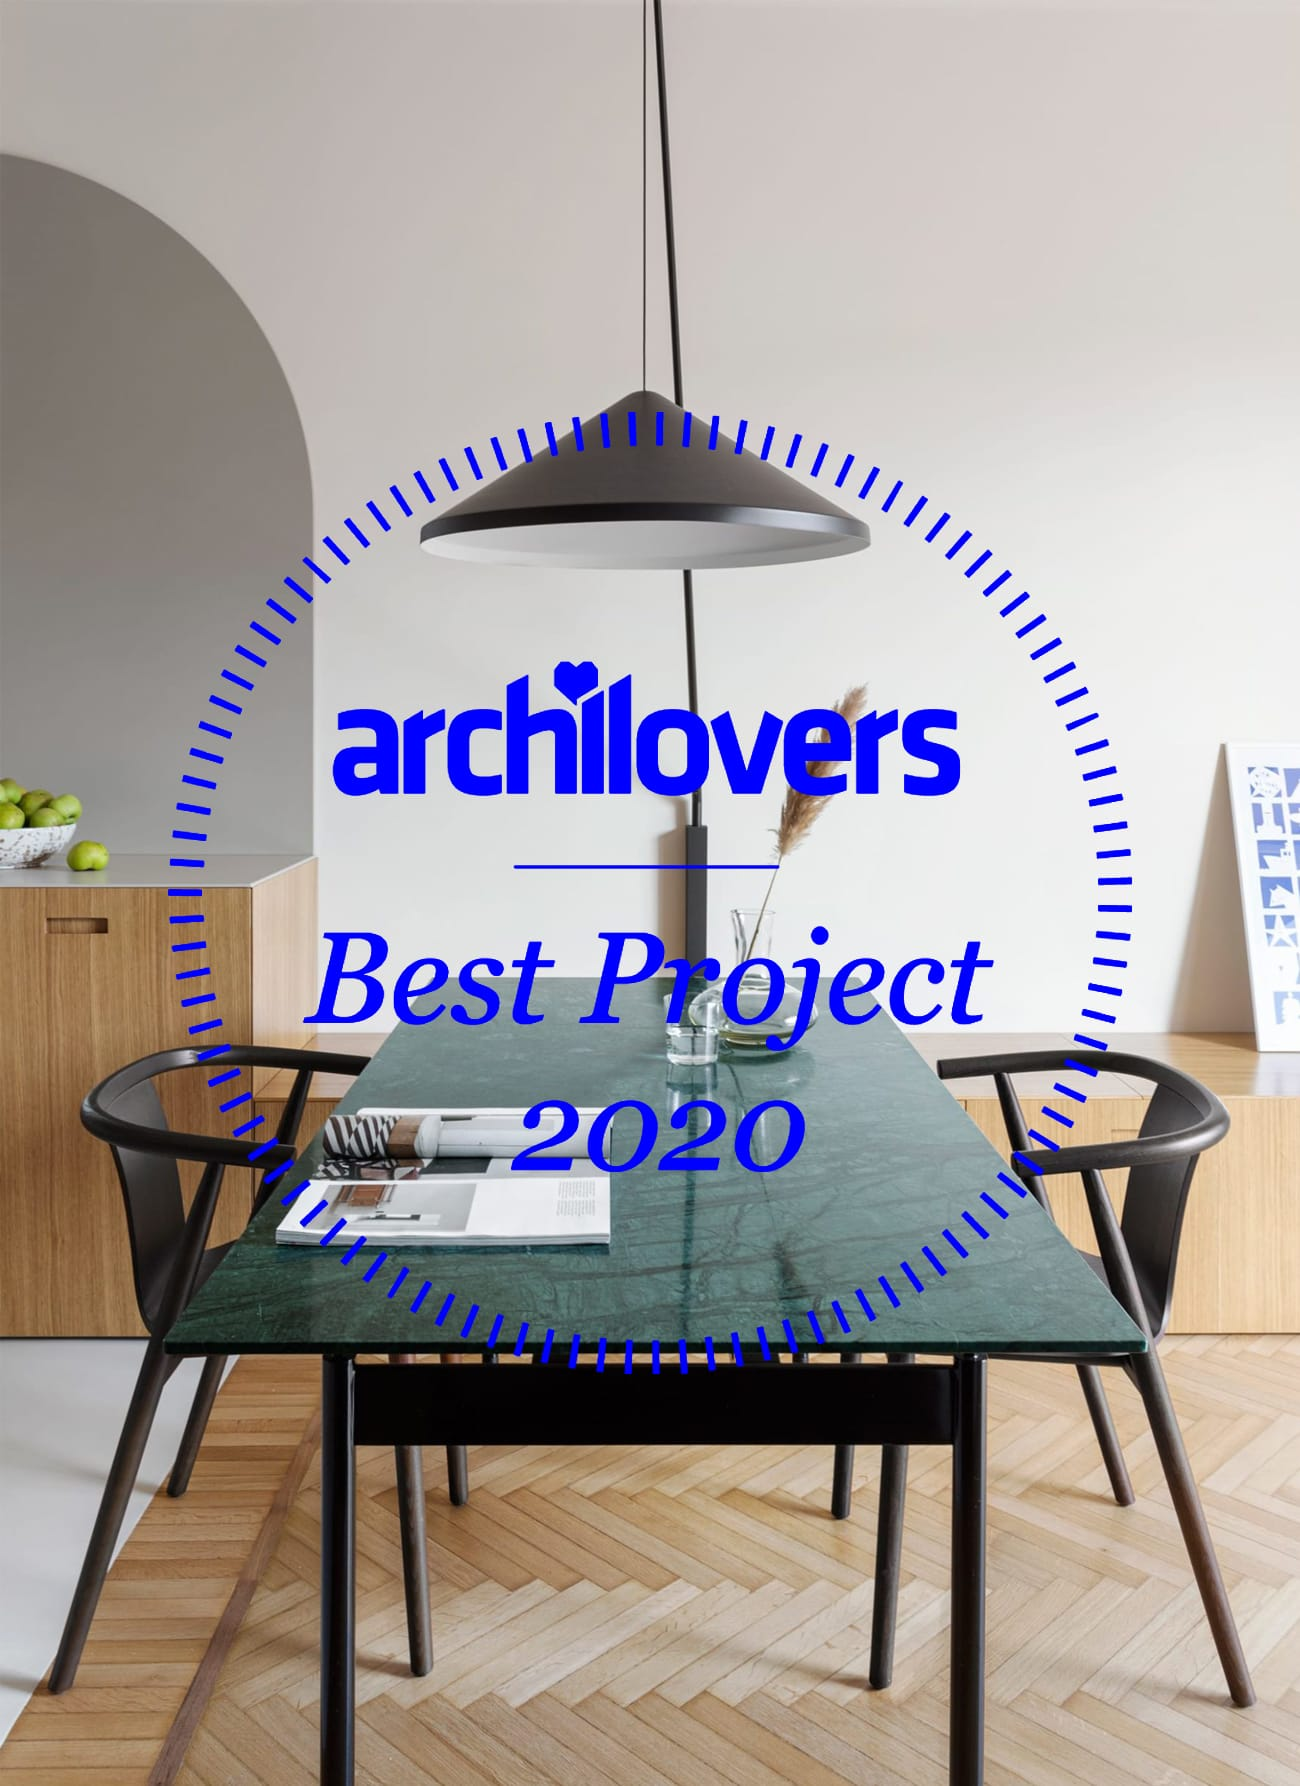 journal_archilovers2020_4